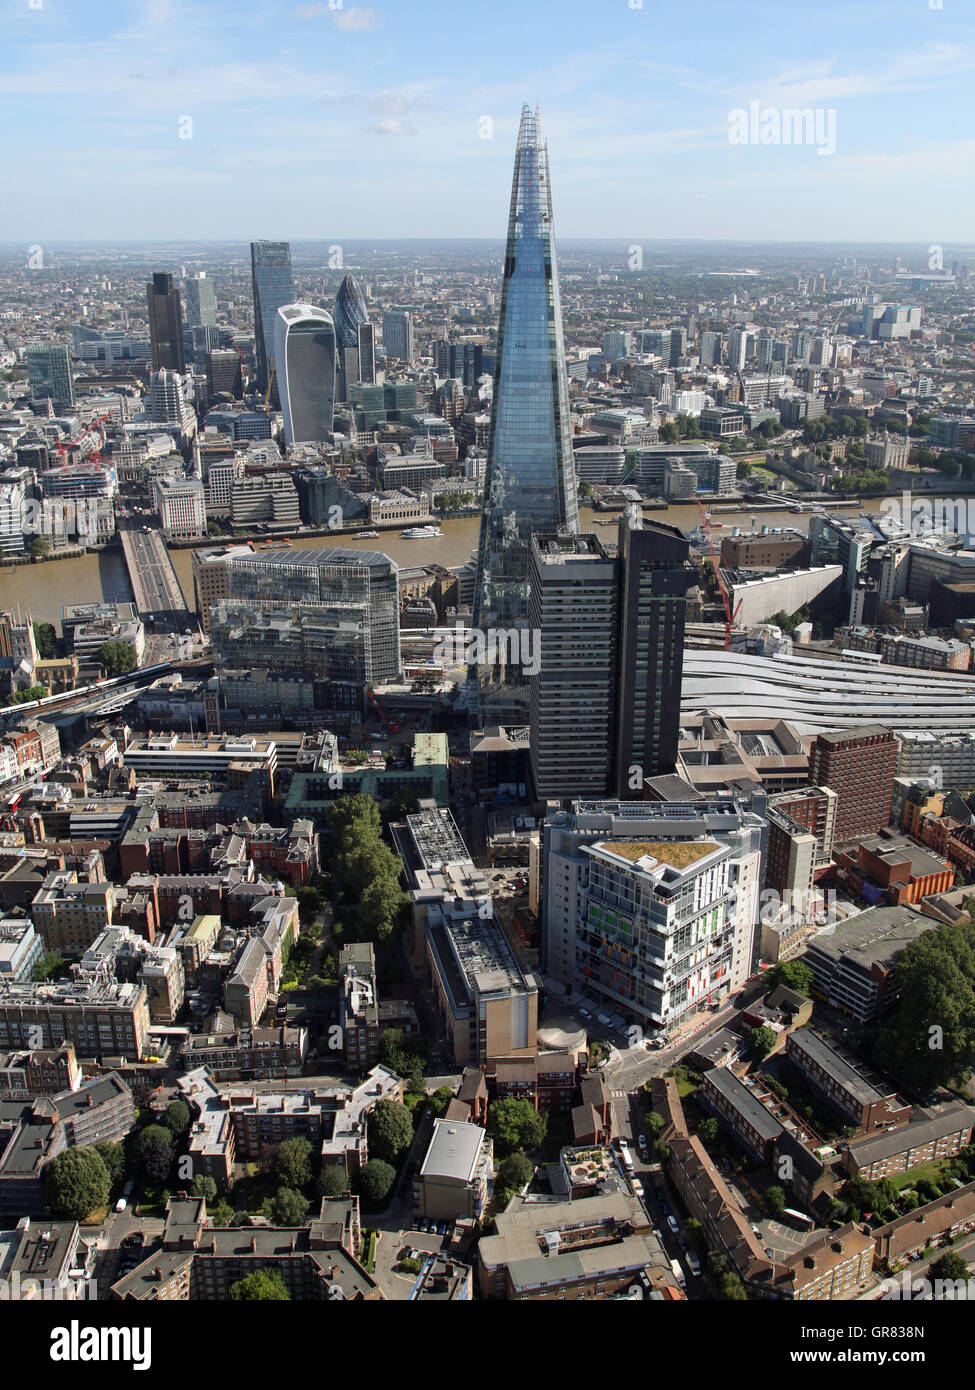 aerial view of Guys Hospital, SE1, The Shard, River Thames and The City, London, UK - Stock Image